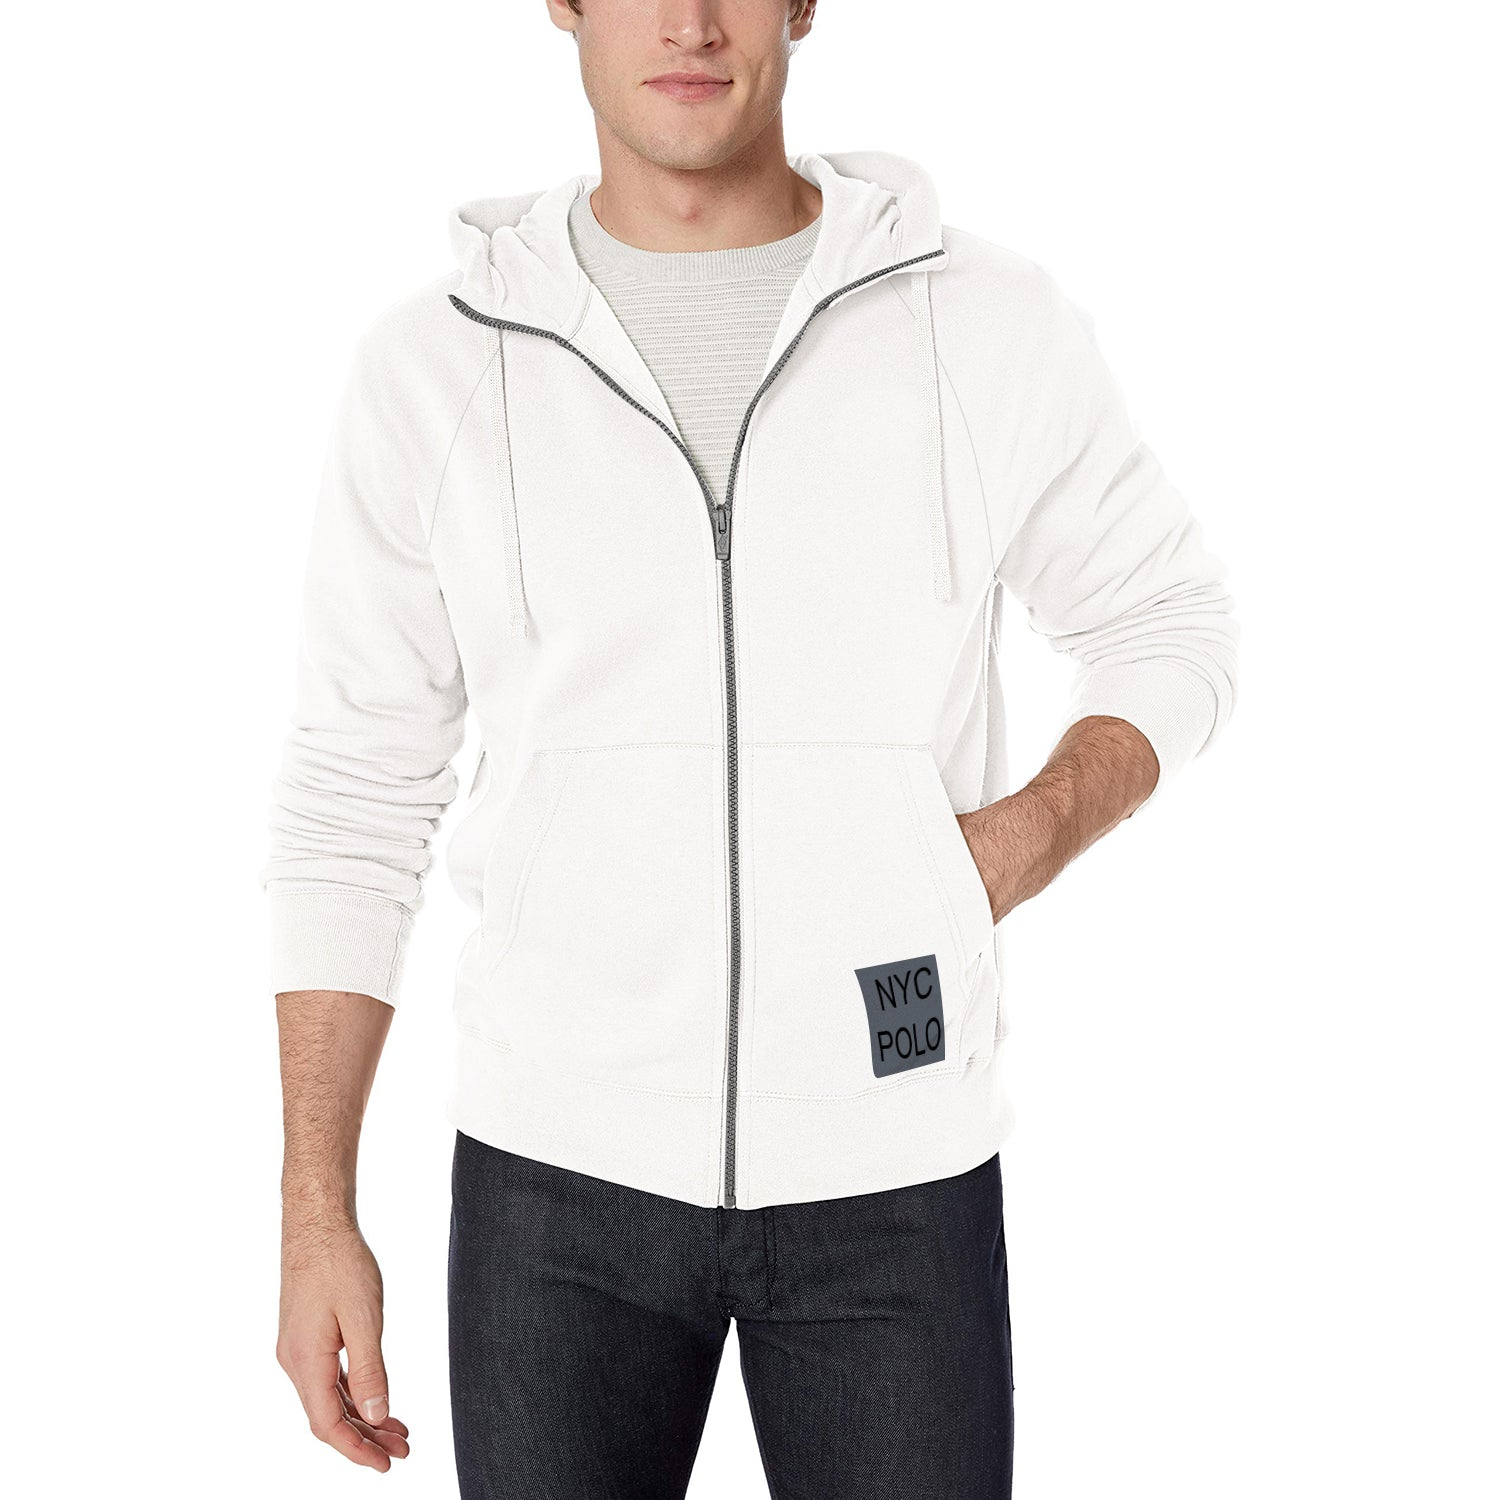 NYC Polo Fleece Full Zipper Hoodie For Men-White-BE10746